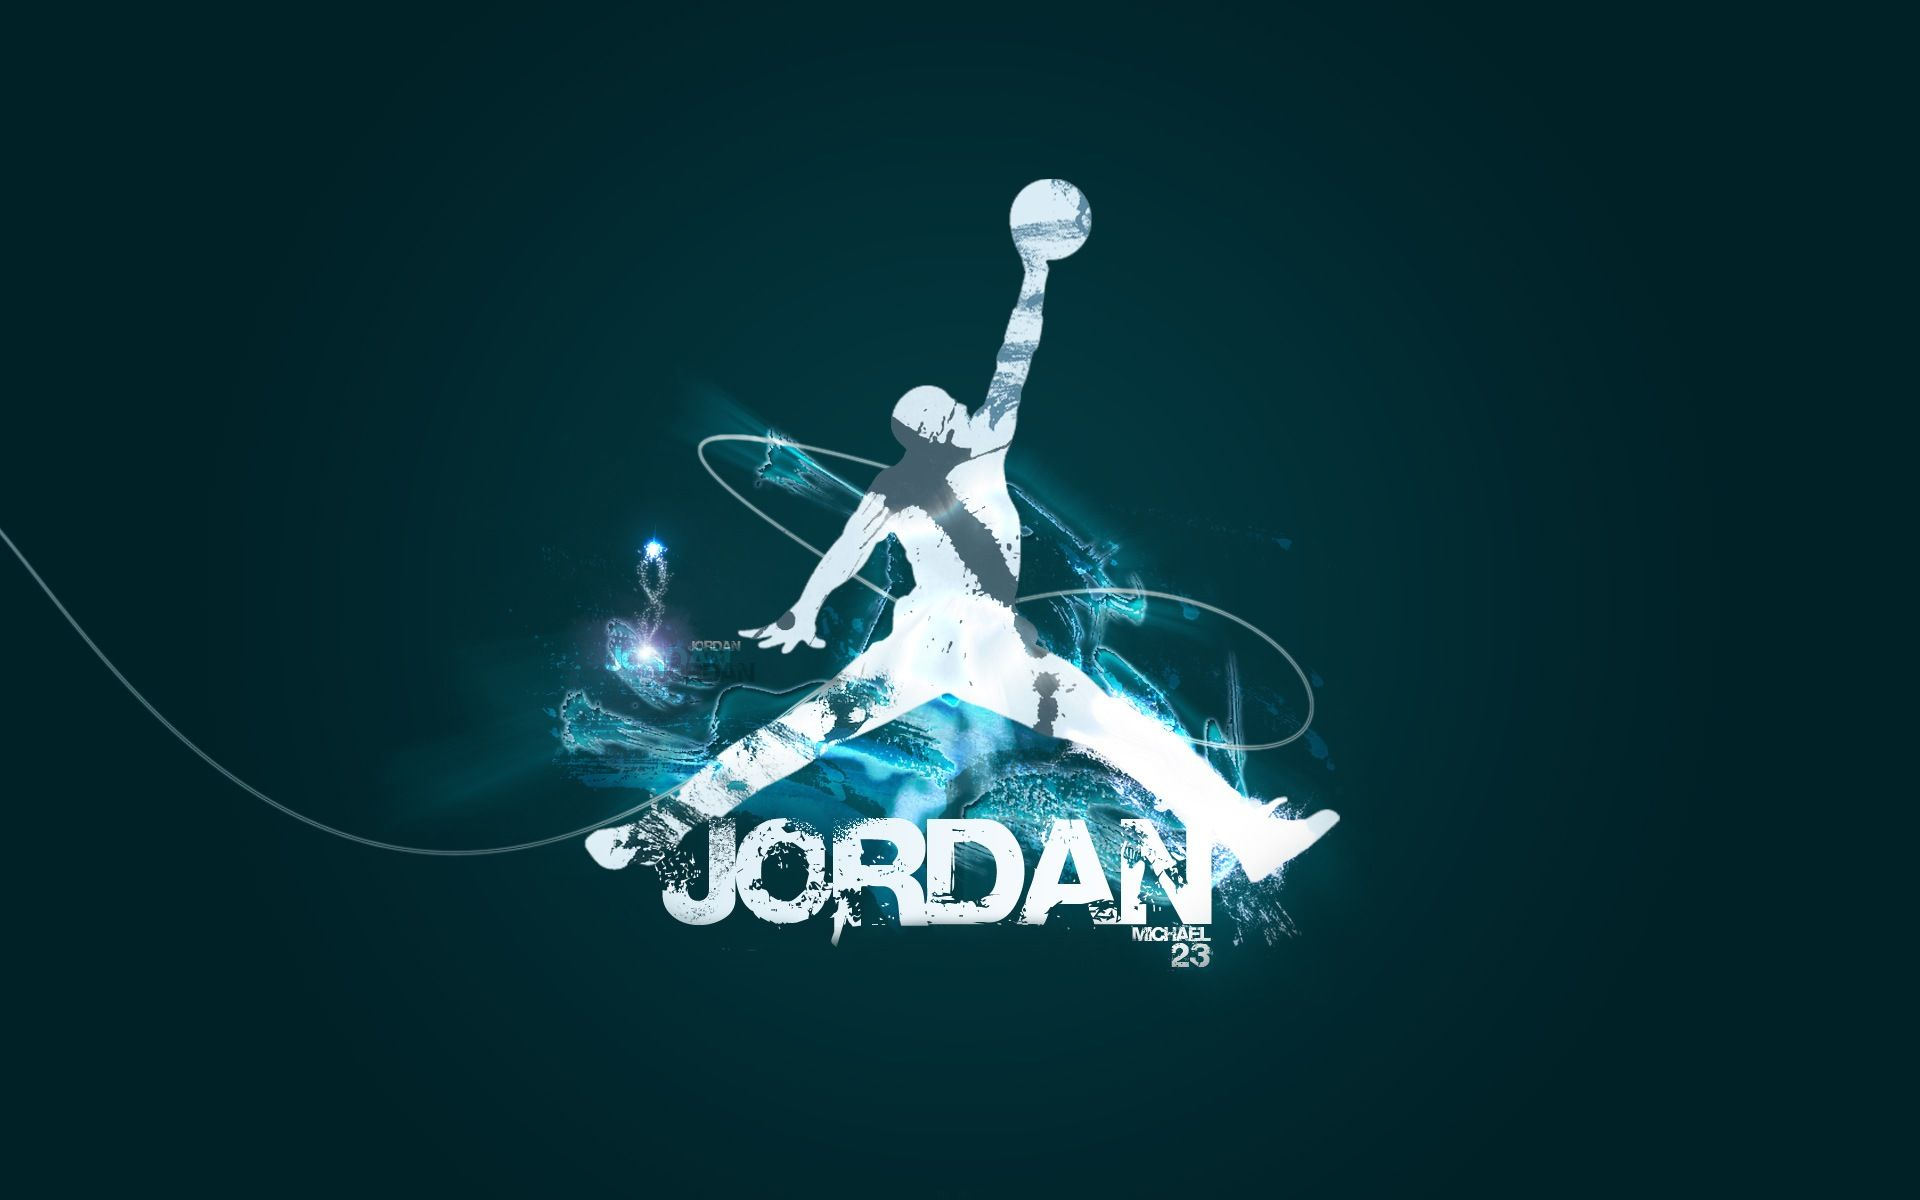 Jordan Logo Wallpapers | WallpapersIn4k net